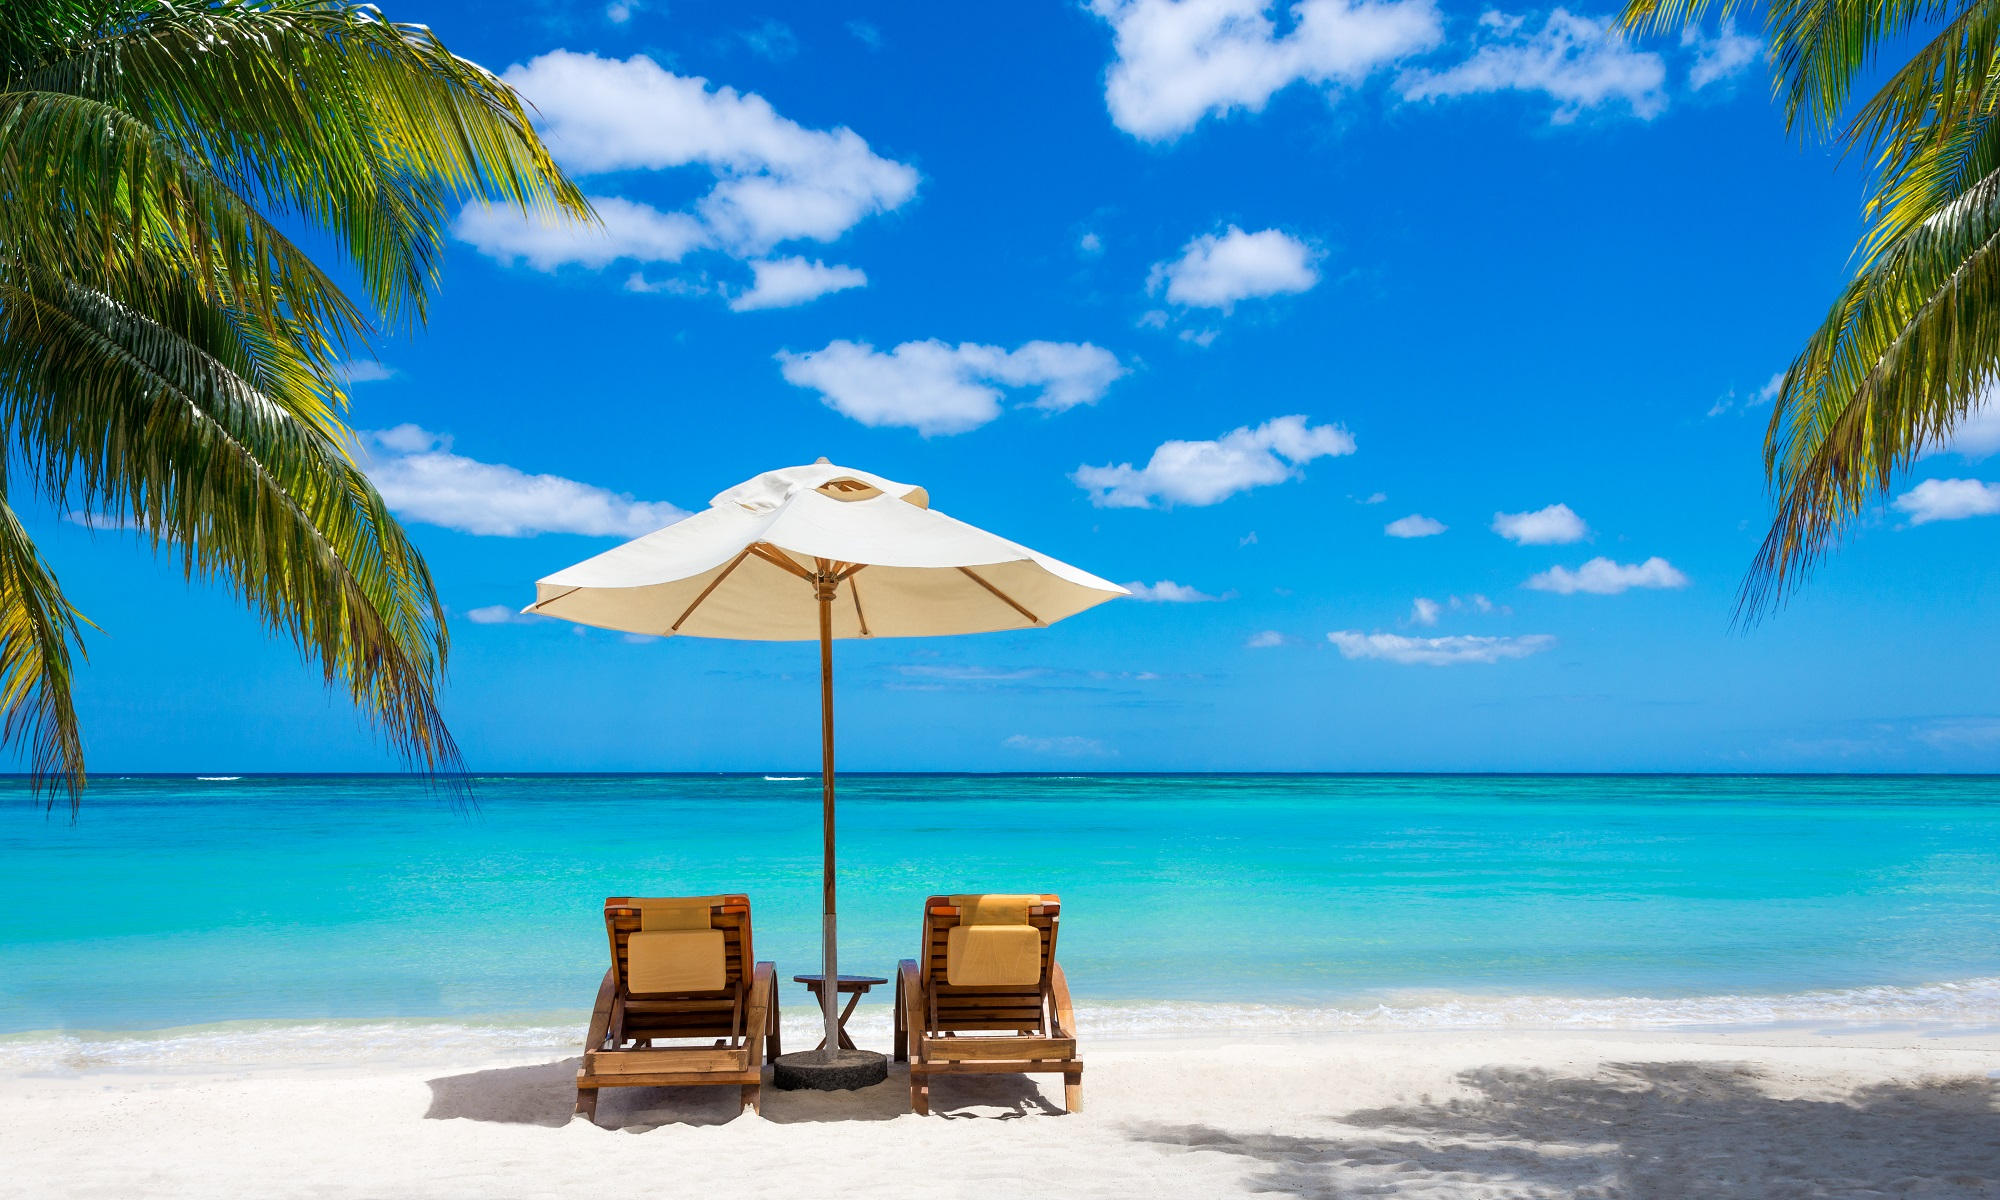 Two lounge chairs and umbrella on white sandy beach with palm trees facing calm blue ocean